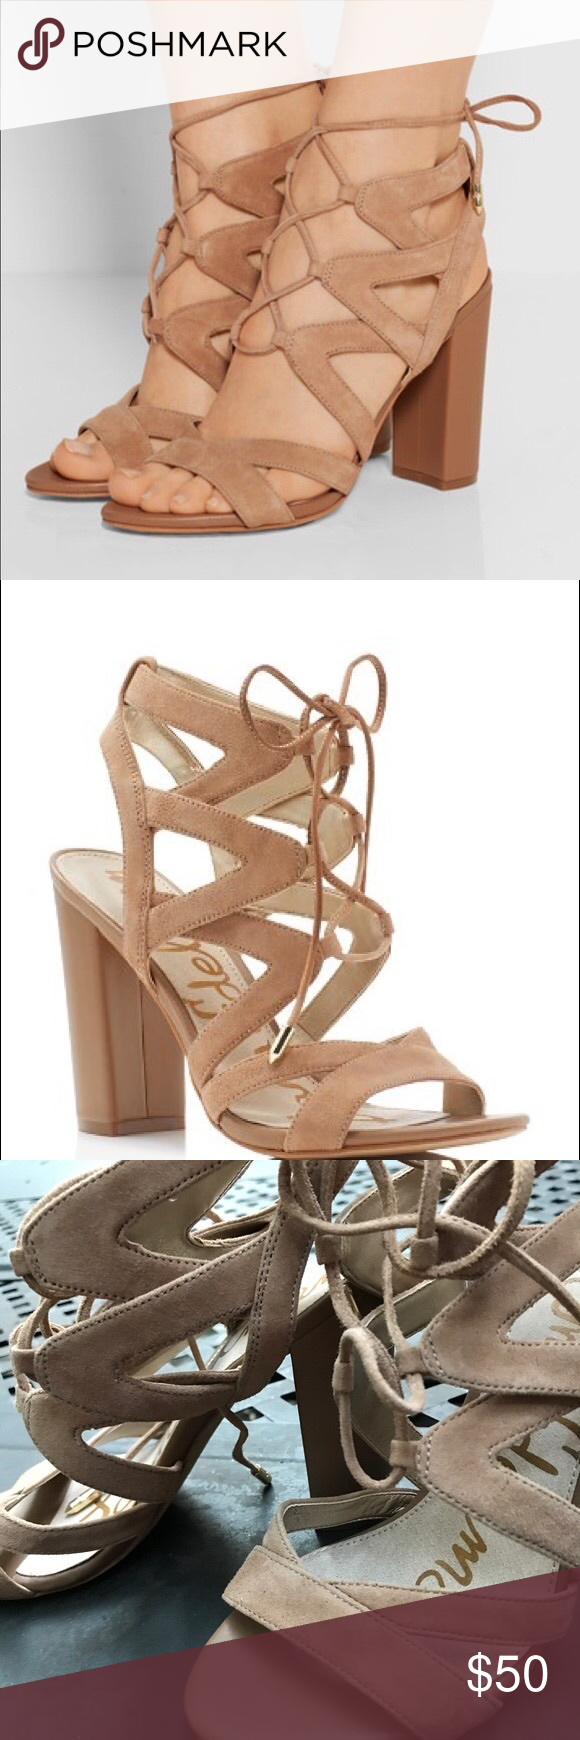 "bd6533a2b35402 Sam Edelman Yardley Sandal 5.5 Nude never worn! like new Sam Edelman aside  Sandal 4"" covered block heel open toe caged lace up vamp padded footbed  smooth ..."